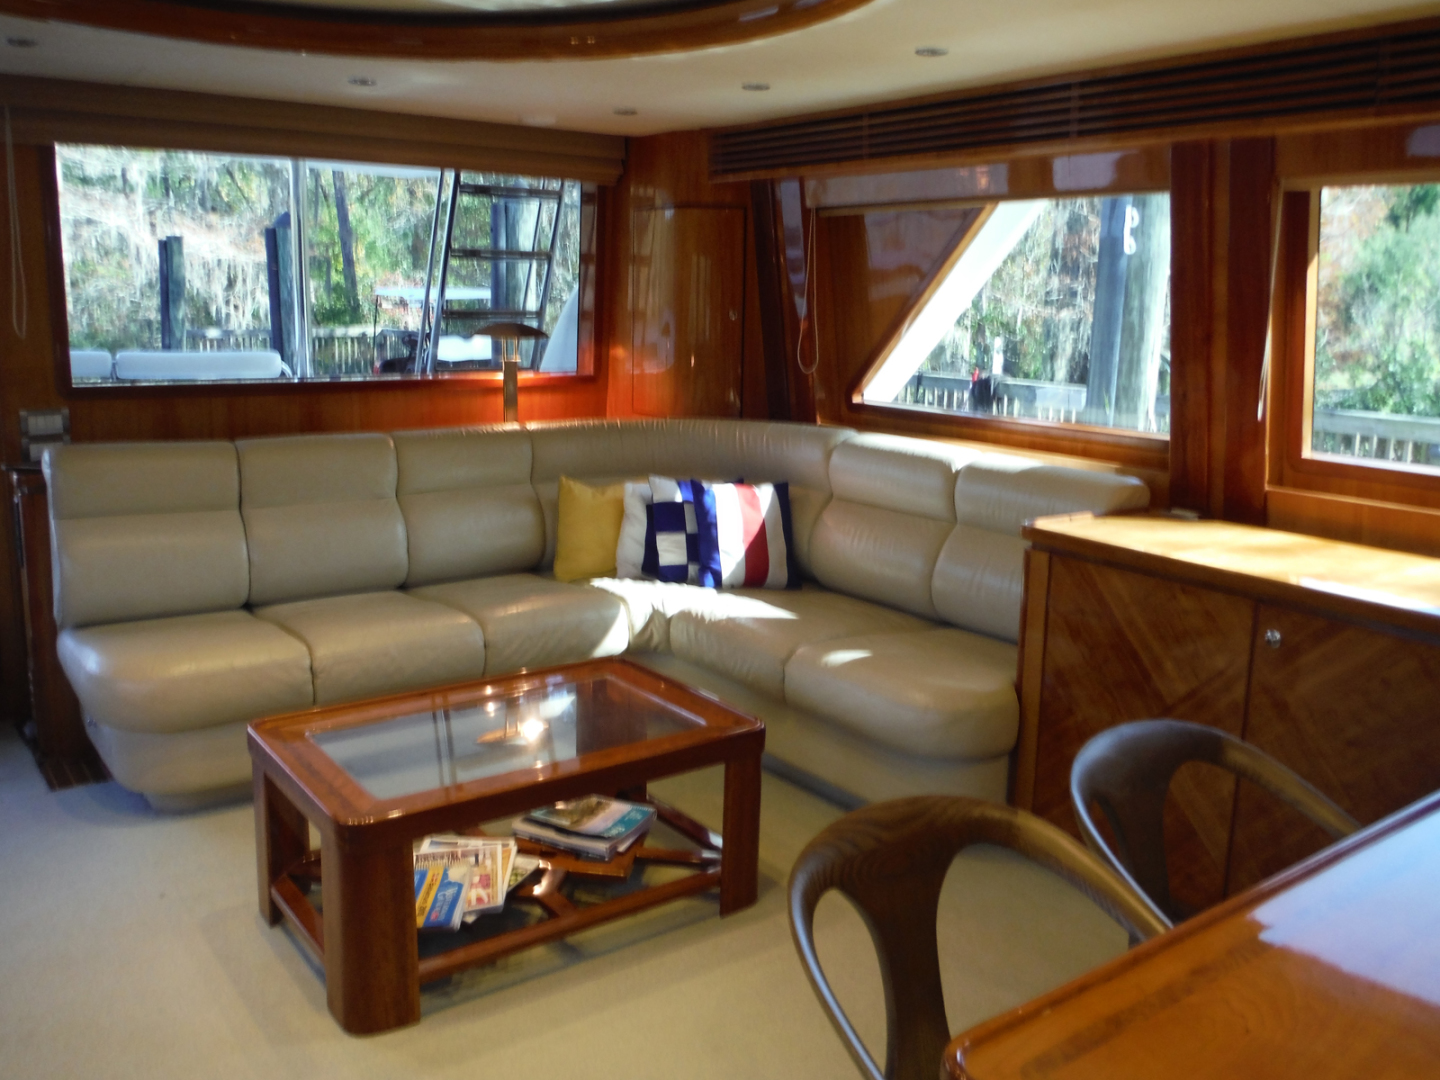 Hargrave-Flybridge Motor Yacht 2001-GRACE Fort Lauderdale-Florida-United States-Salon Looking Aft to Starboard-1091920 | Thumbnail